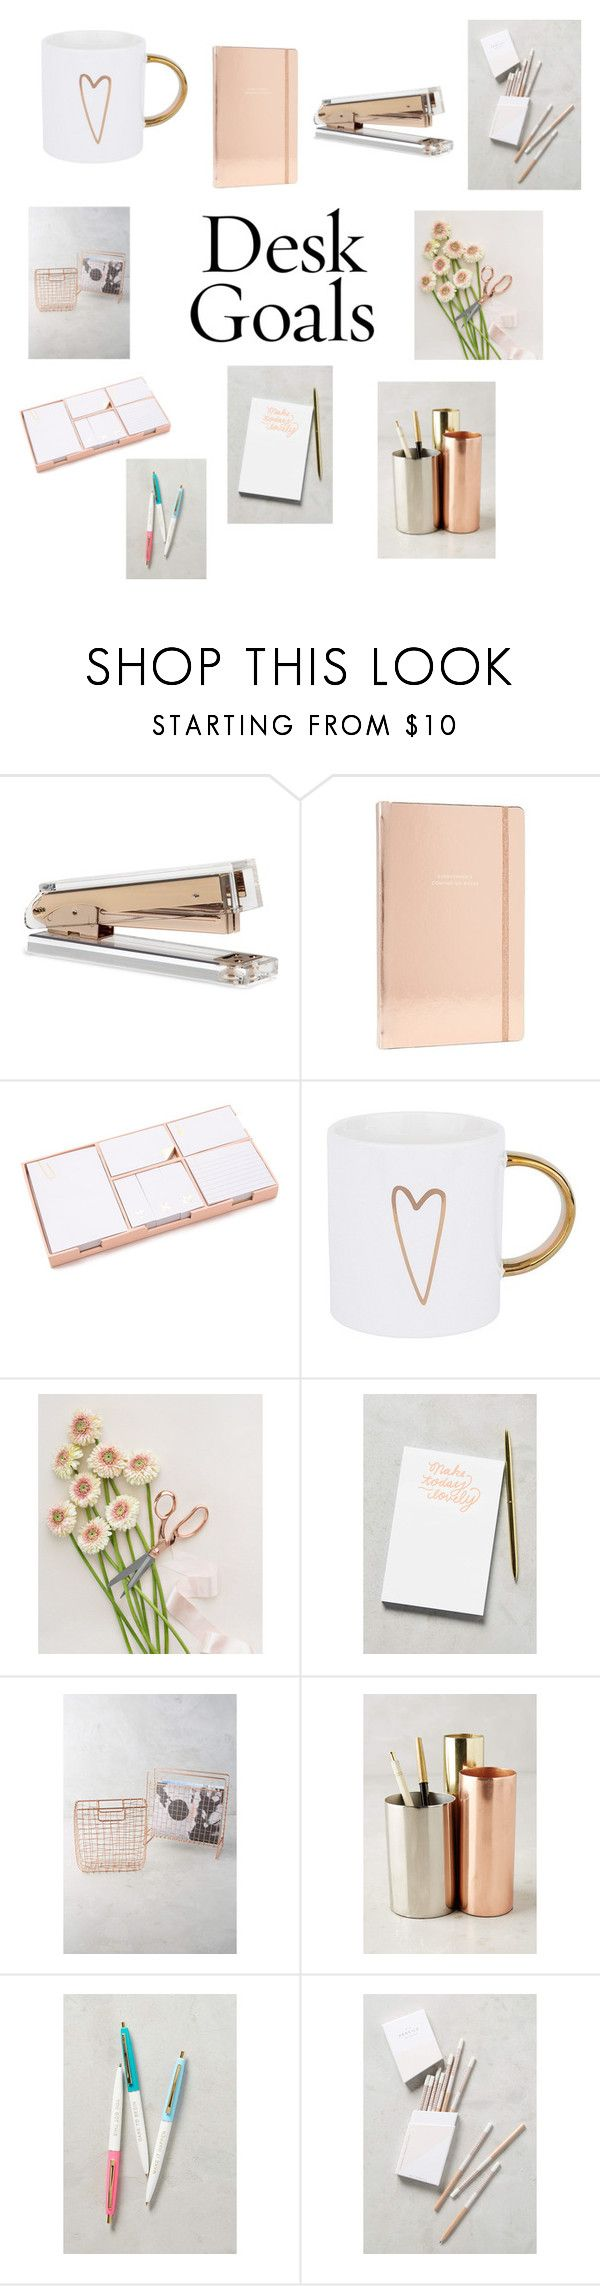 """""""Rose Gold Desk Goals"""" by redenjewelry ❤ liked on Polyvore featuring interior, interiors, interior design, home, home decor, interior decorating, Kate Spade, West   Emory, Moglea and Anthropologie"""